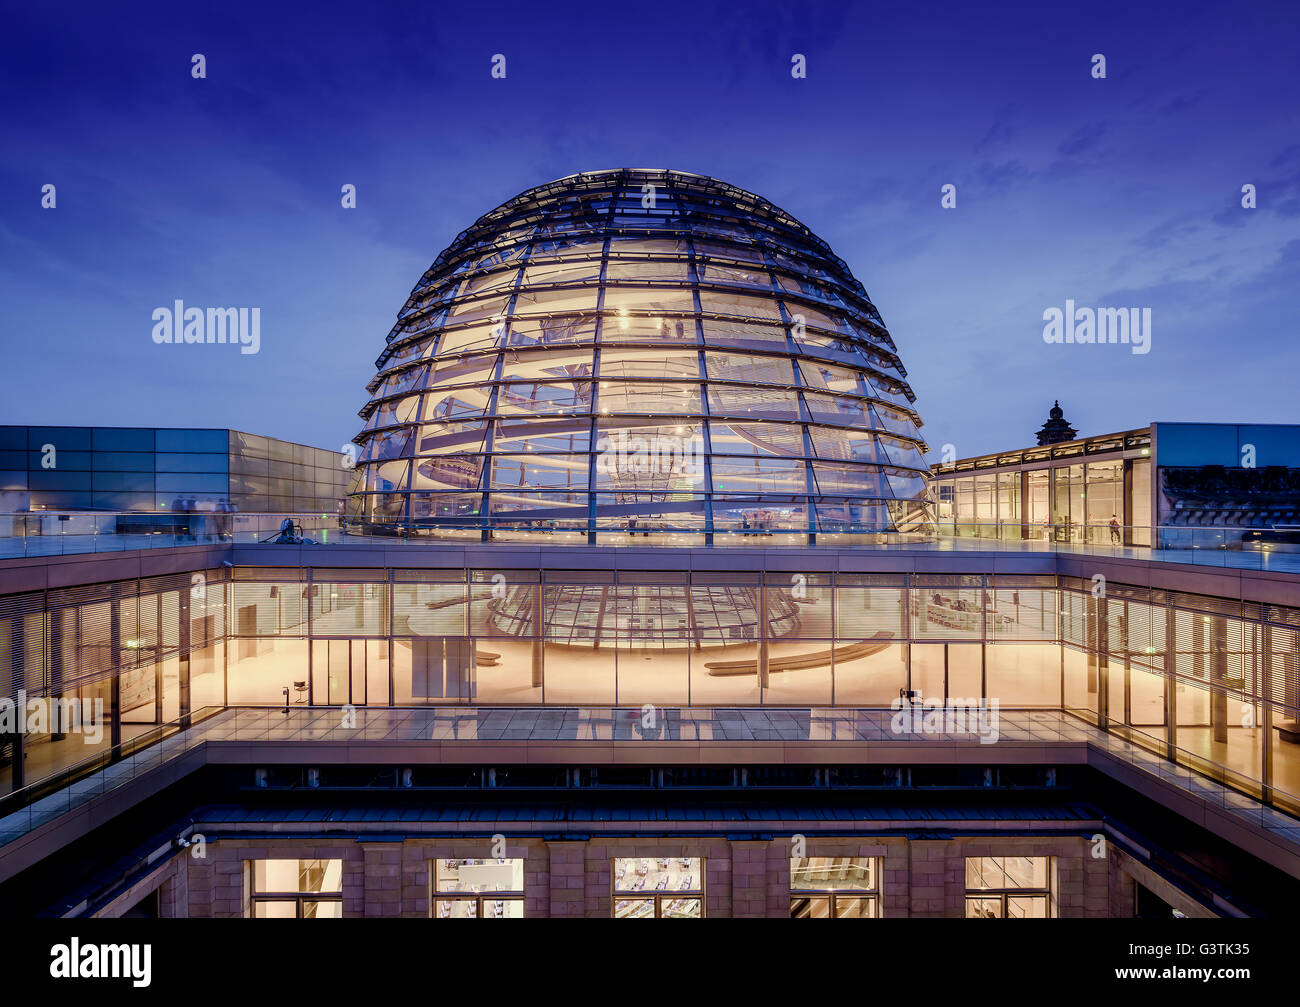 Germany, Berlin, Illuminated dome of Bundestag - Stock Image